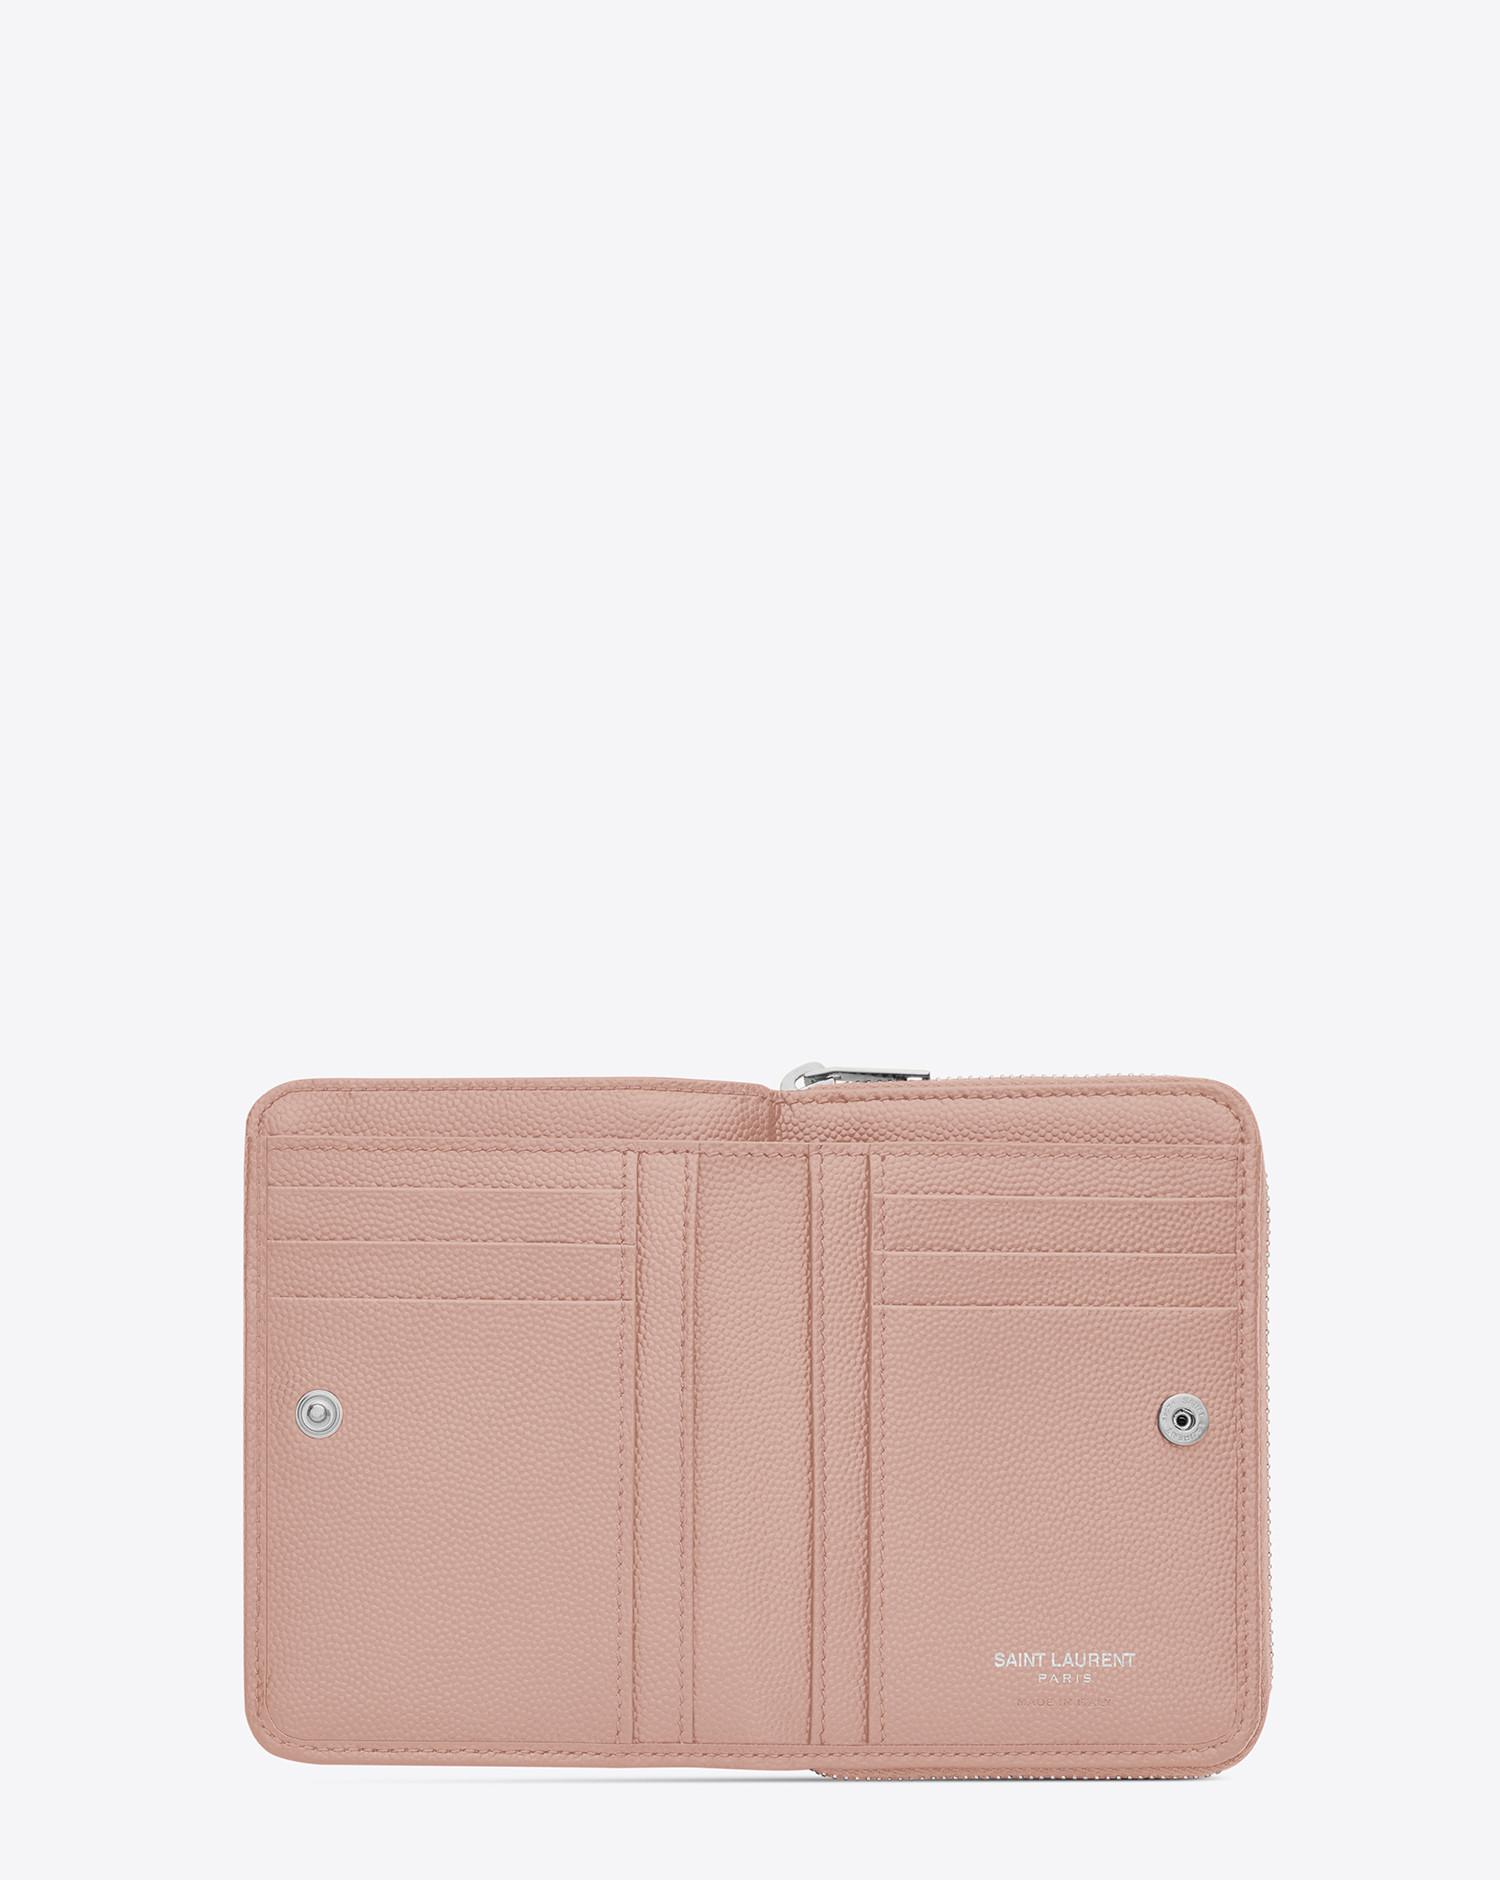 a07a5f97d31bf Lyst - Saint Laurent Monogram Compact Zip Around Wallet In Grain De Poudre  Embossed Leather in Pink